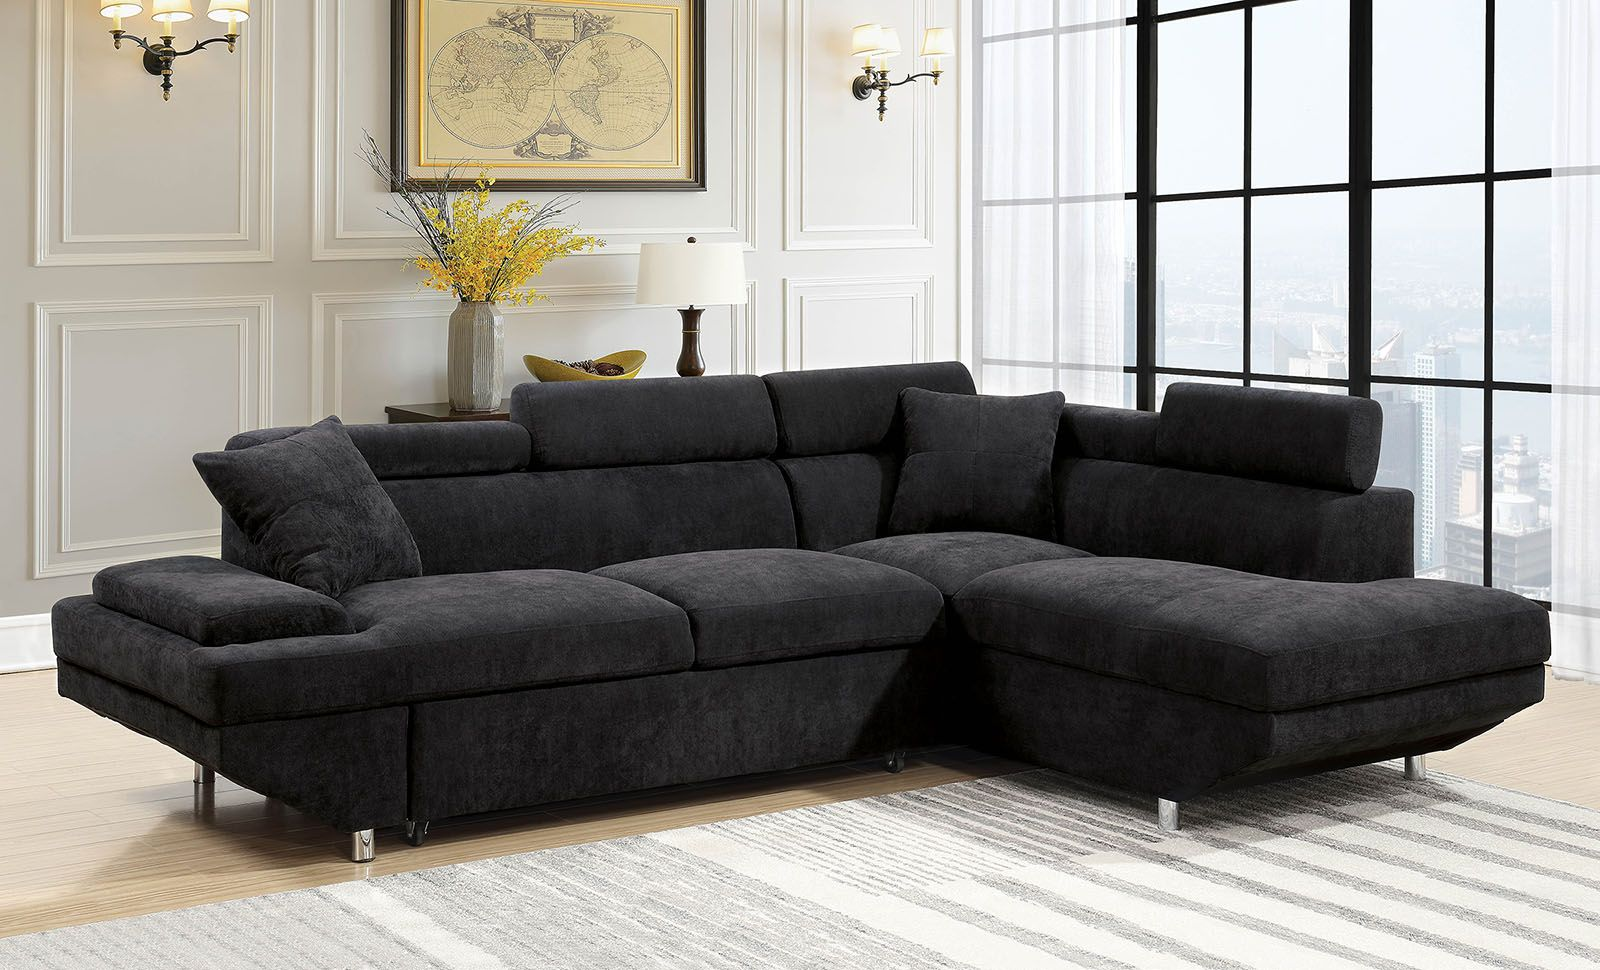 Foreman Contemporary Sectional Sleeper Sofa in Black ...